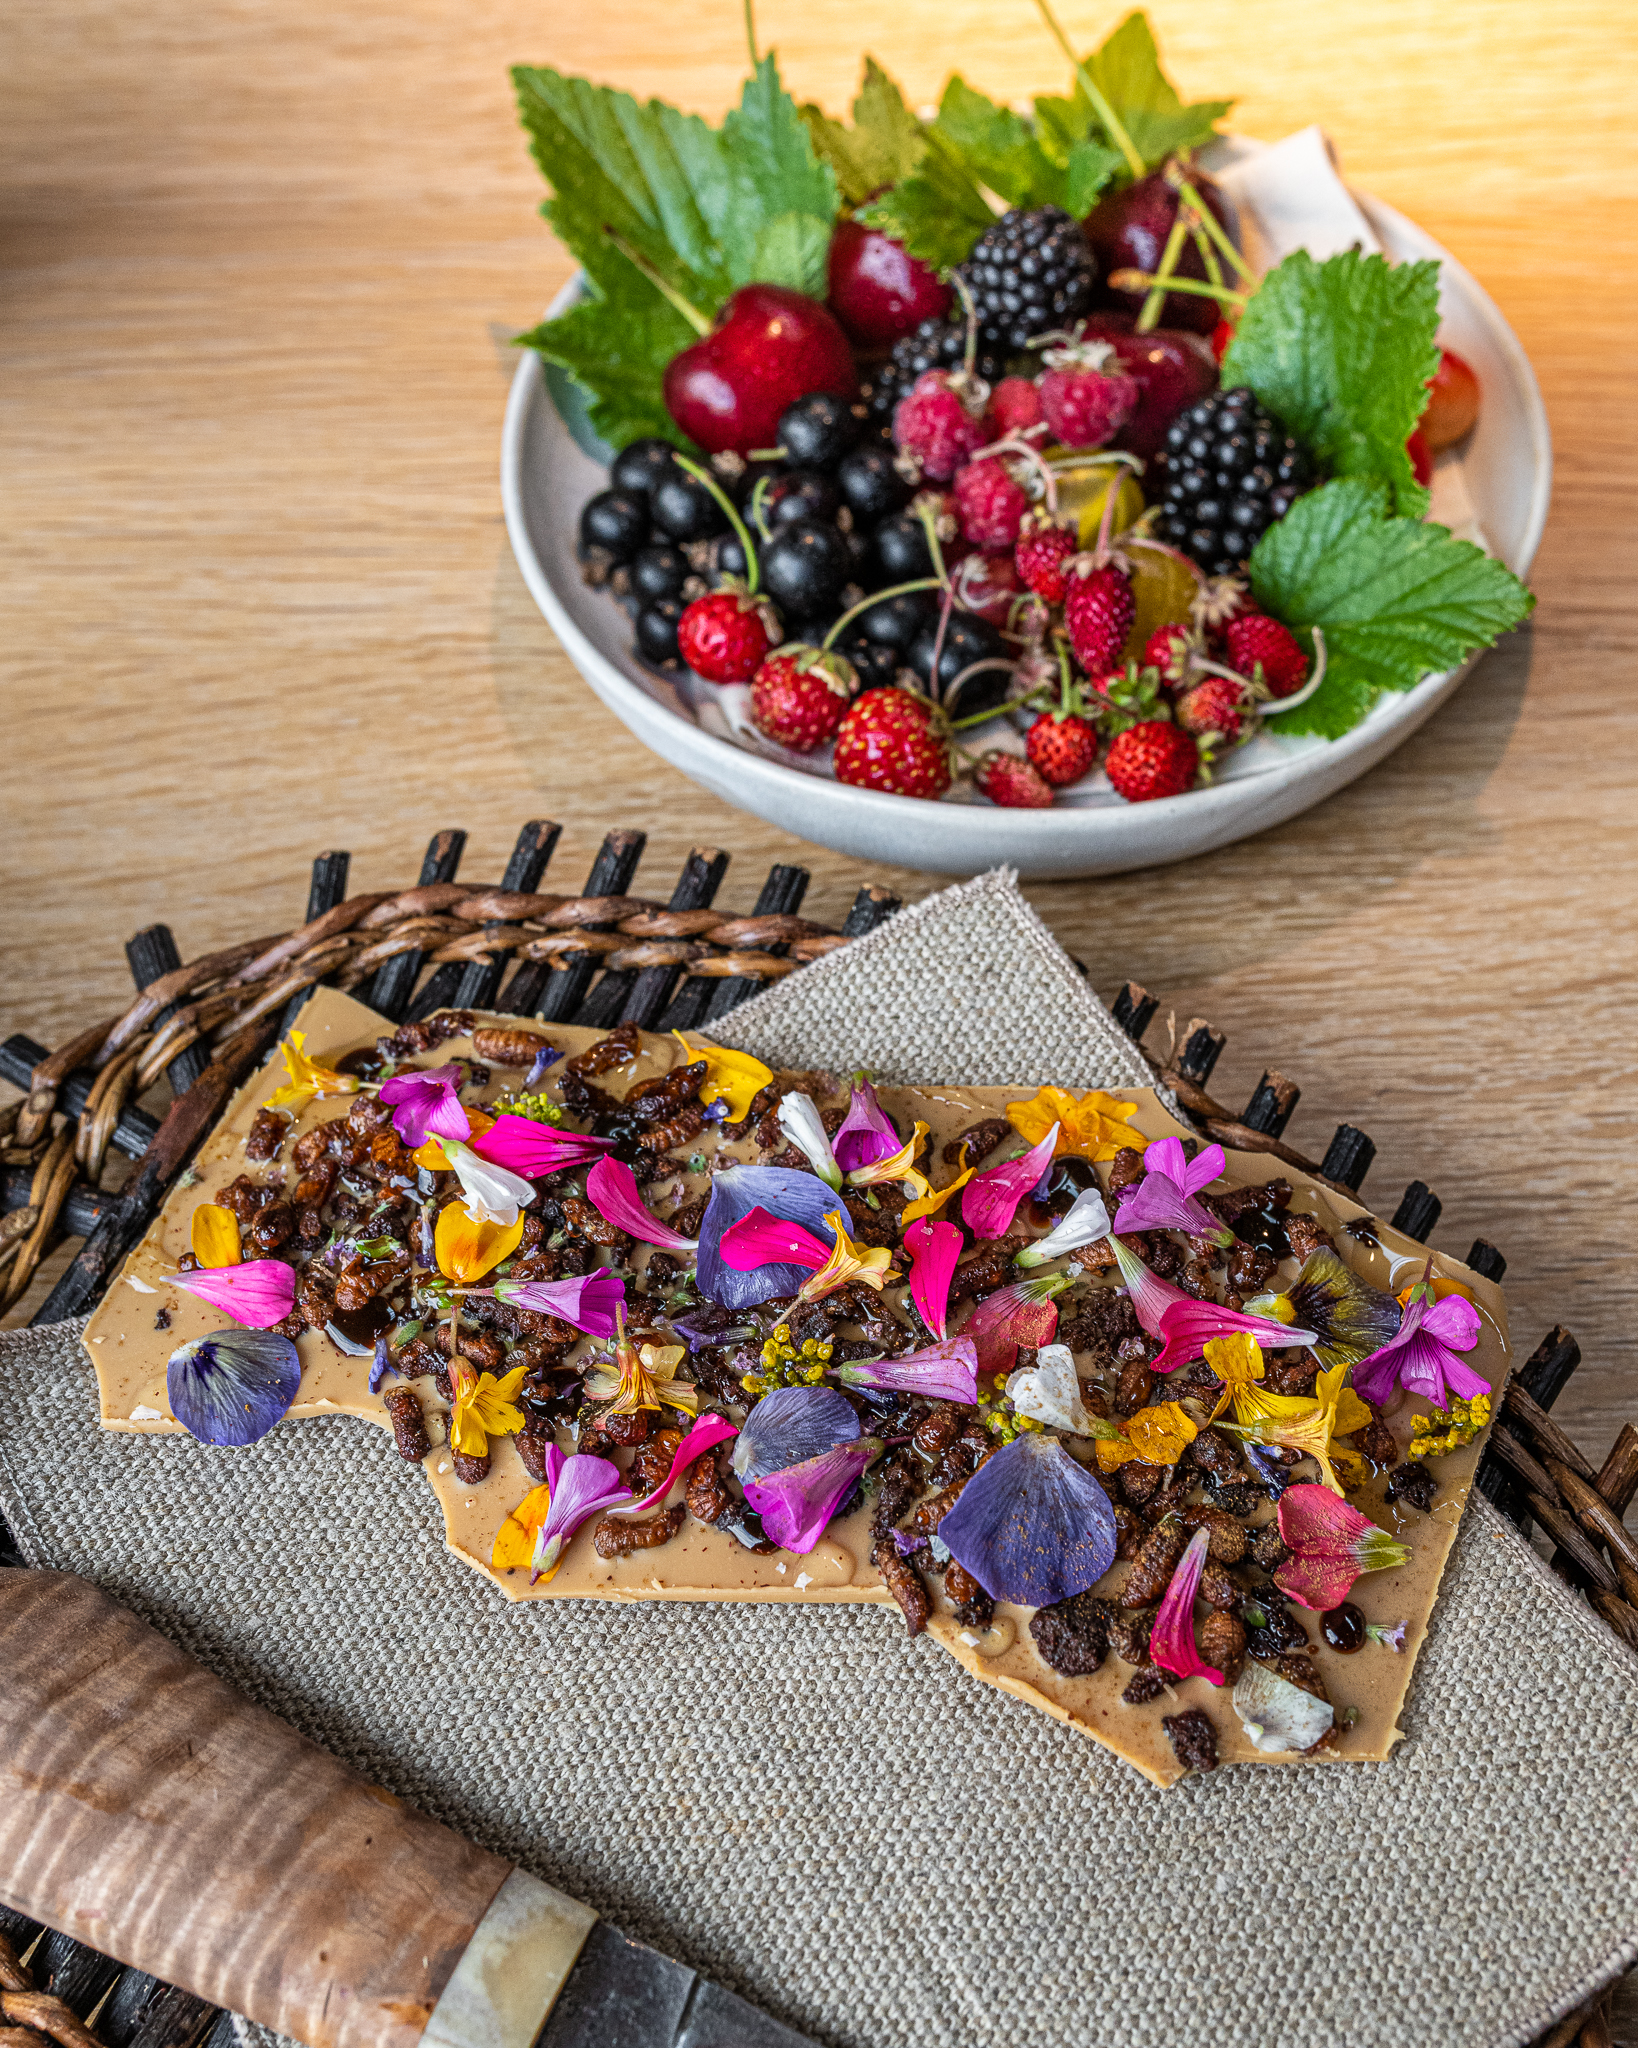 Crispy Bees Cooked with Chocolate and Berries